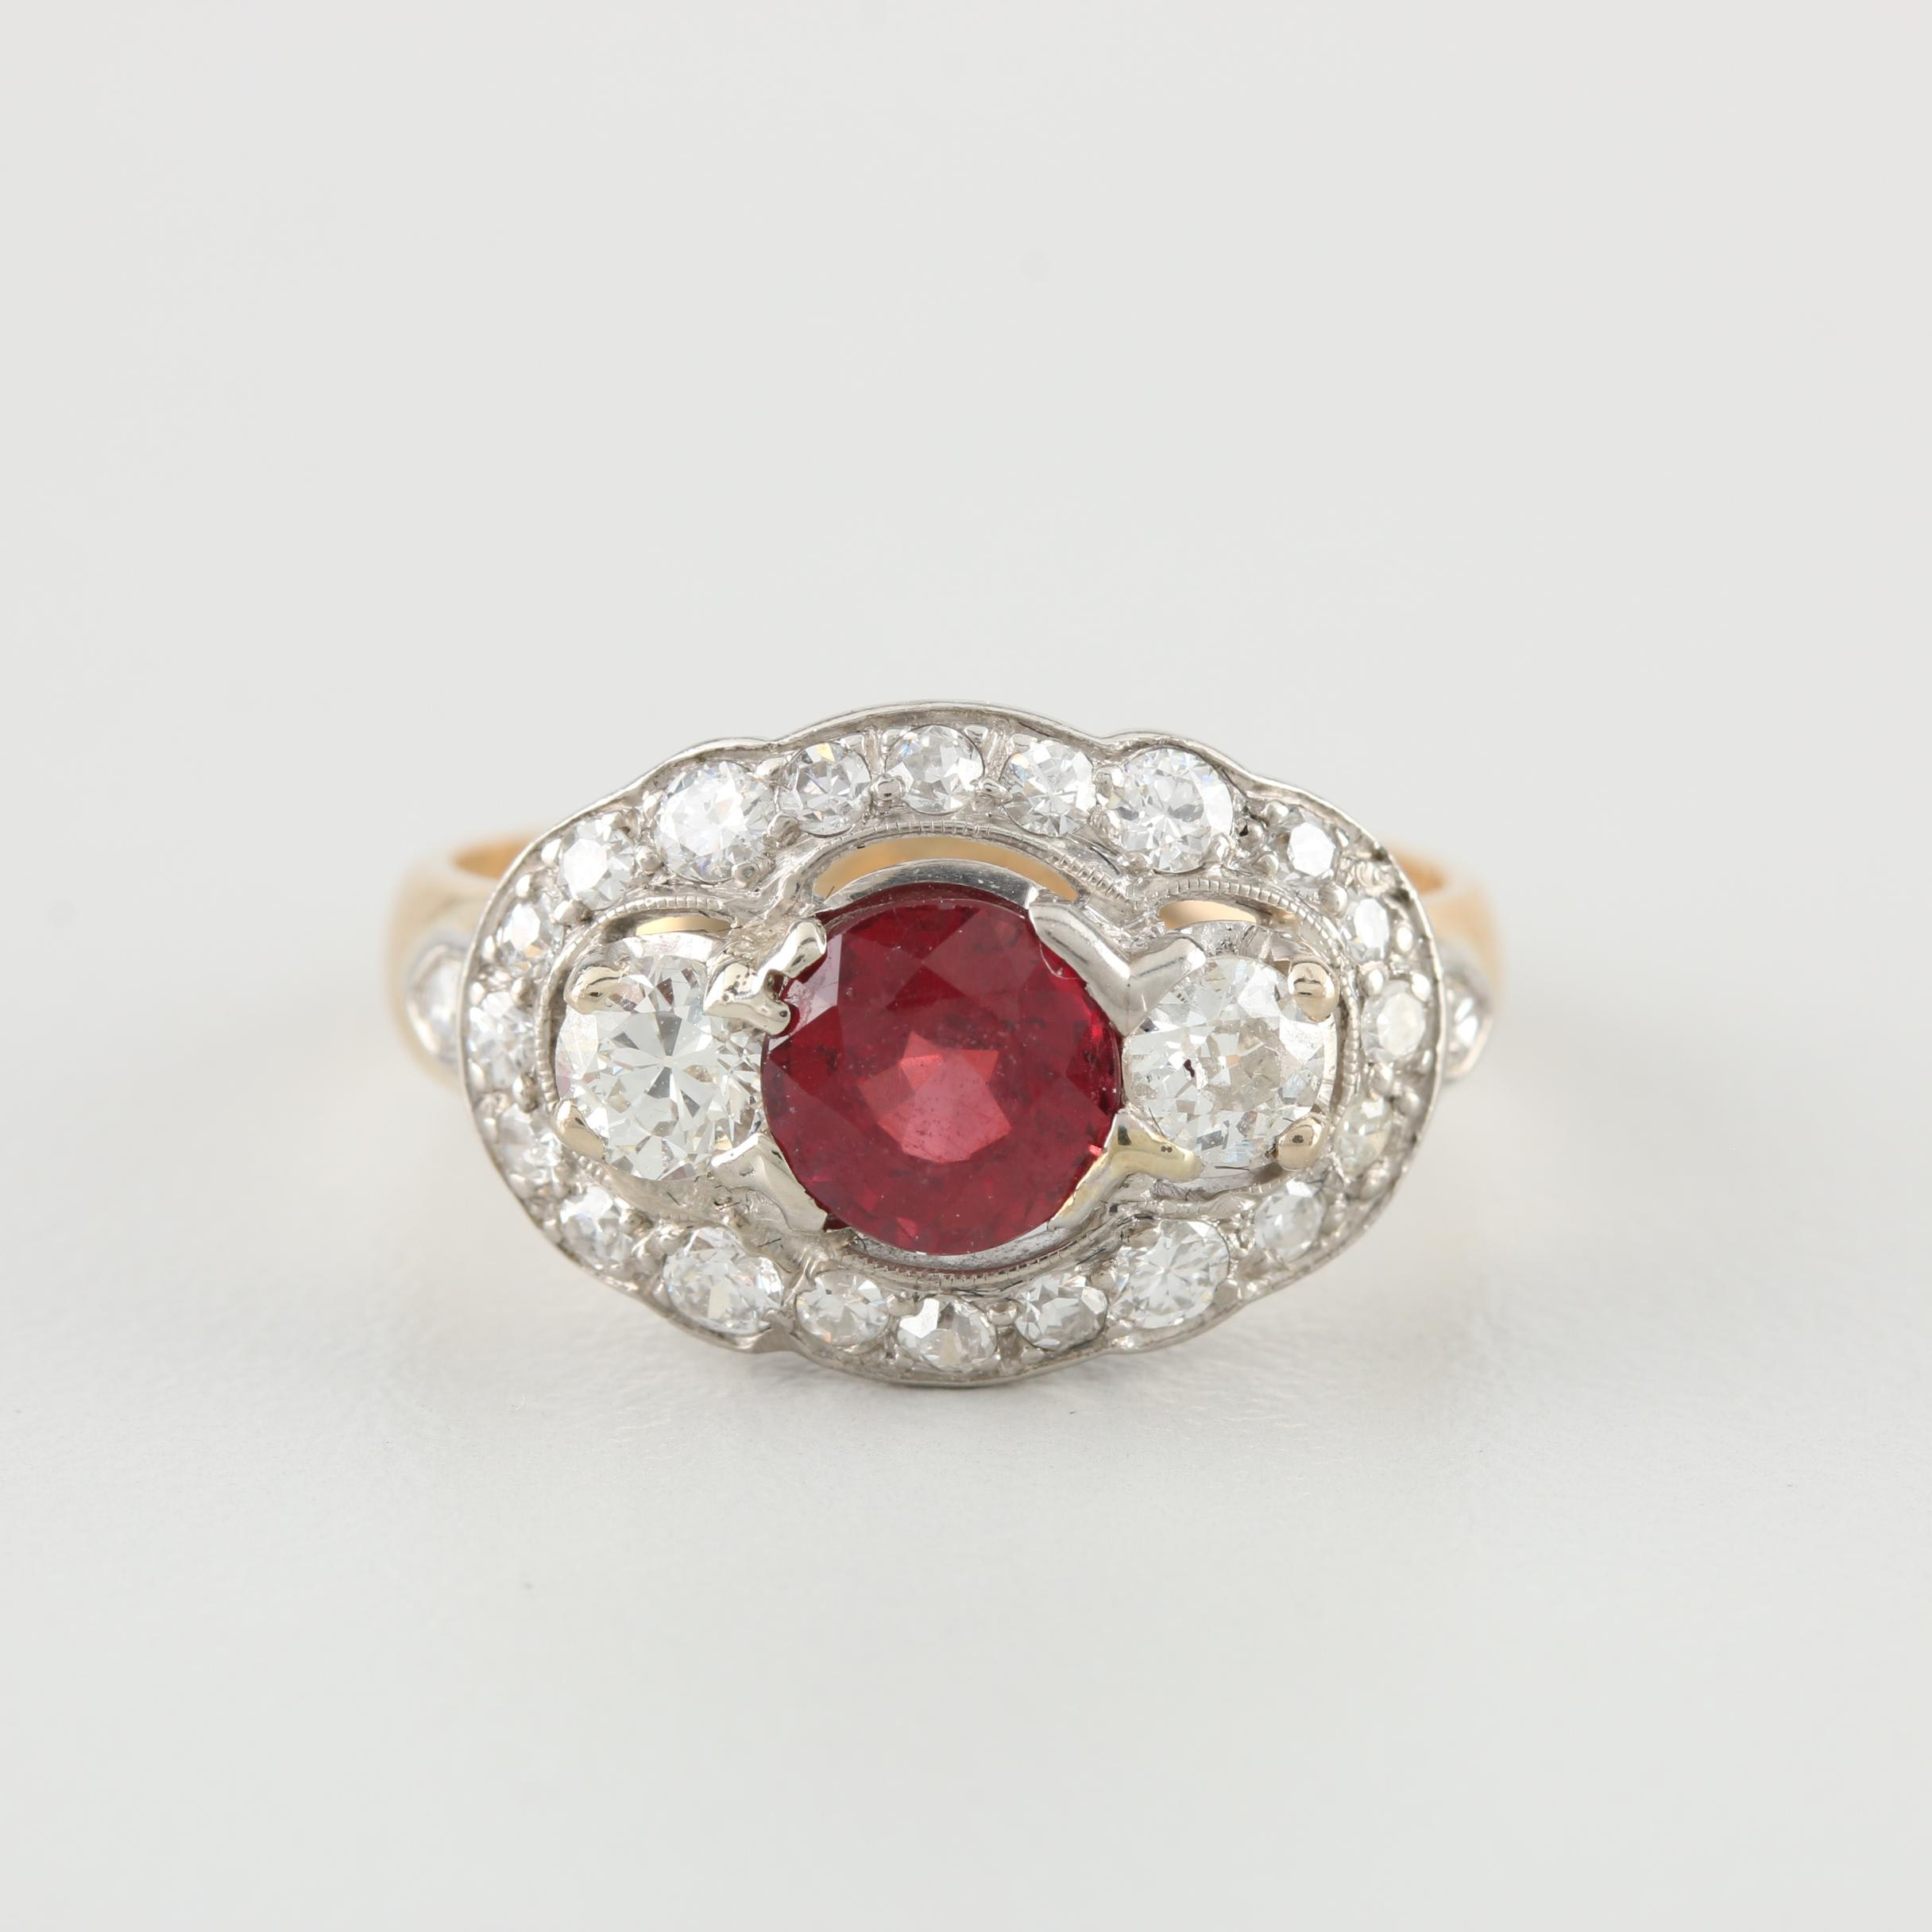 Circa 1930-1940 14K and Palladium Ruby and Diamond Ring